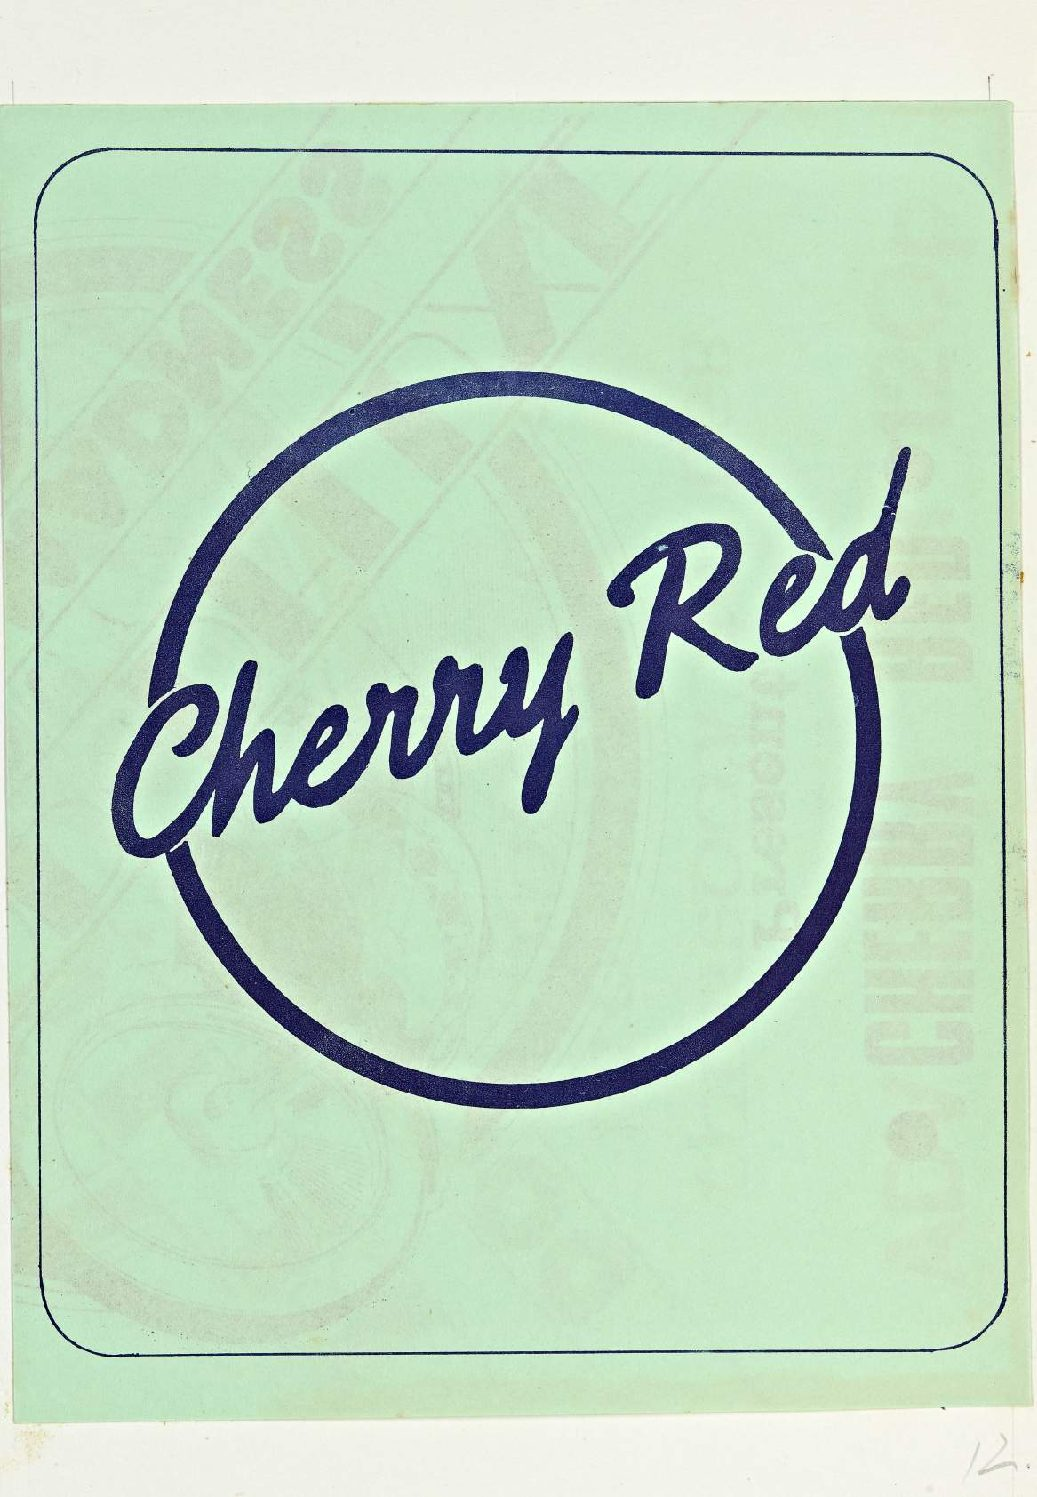 Cherry Red 'fanzine', including advert for Be Bop Deluxe at Malvern Winter Gardens, 26 February 1976